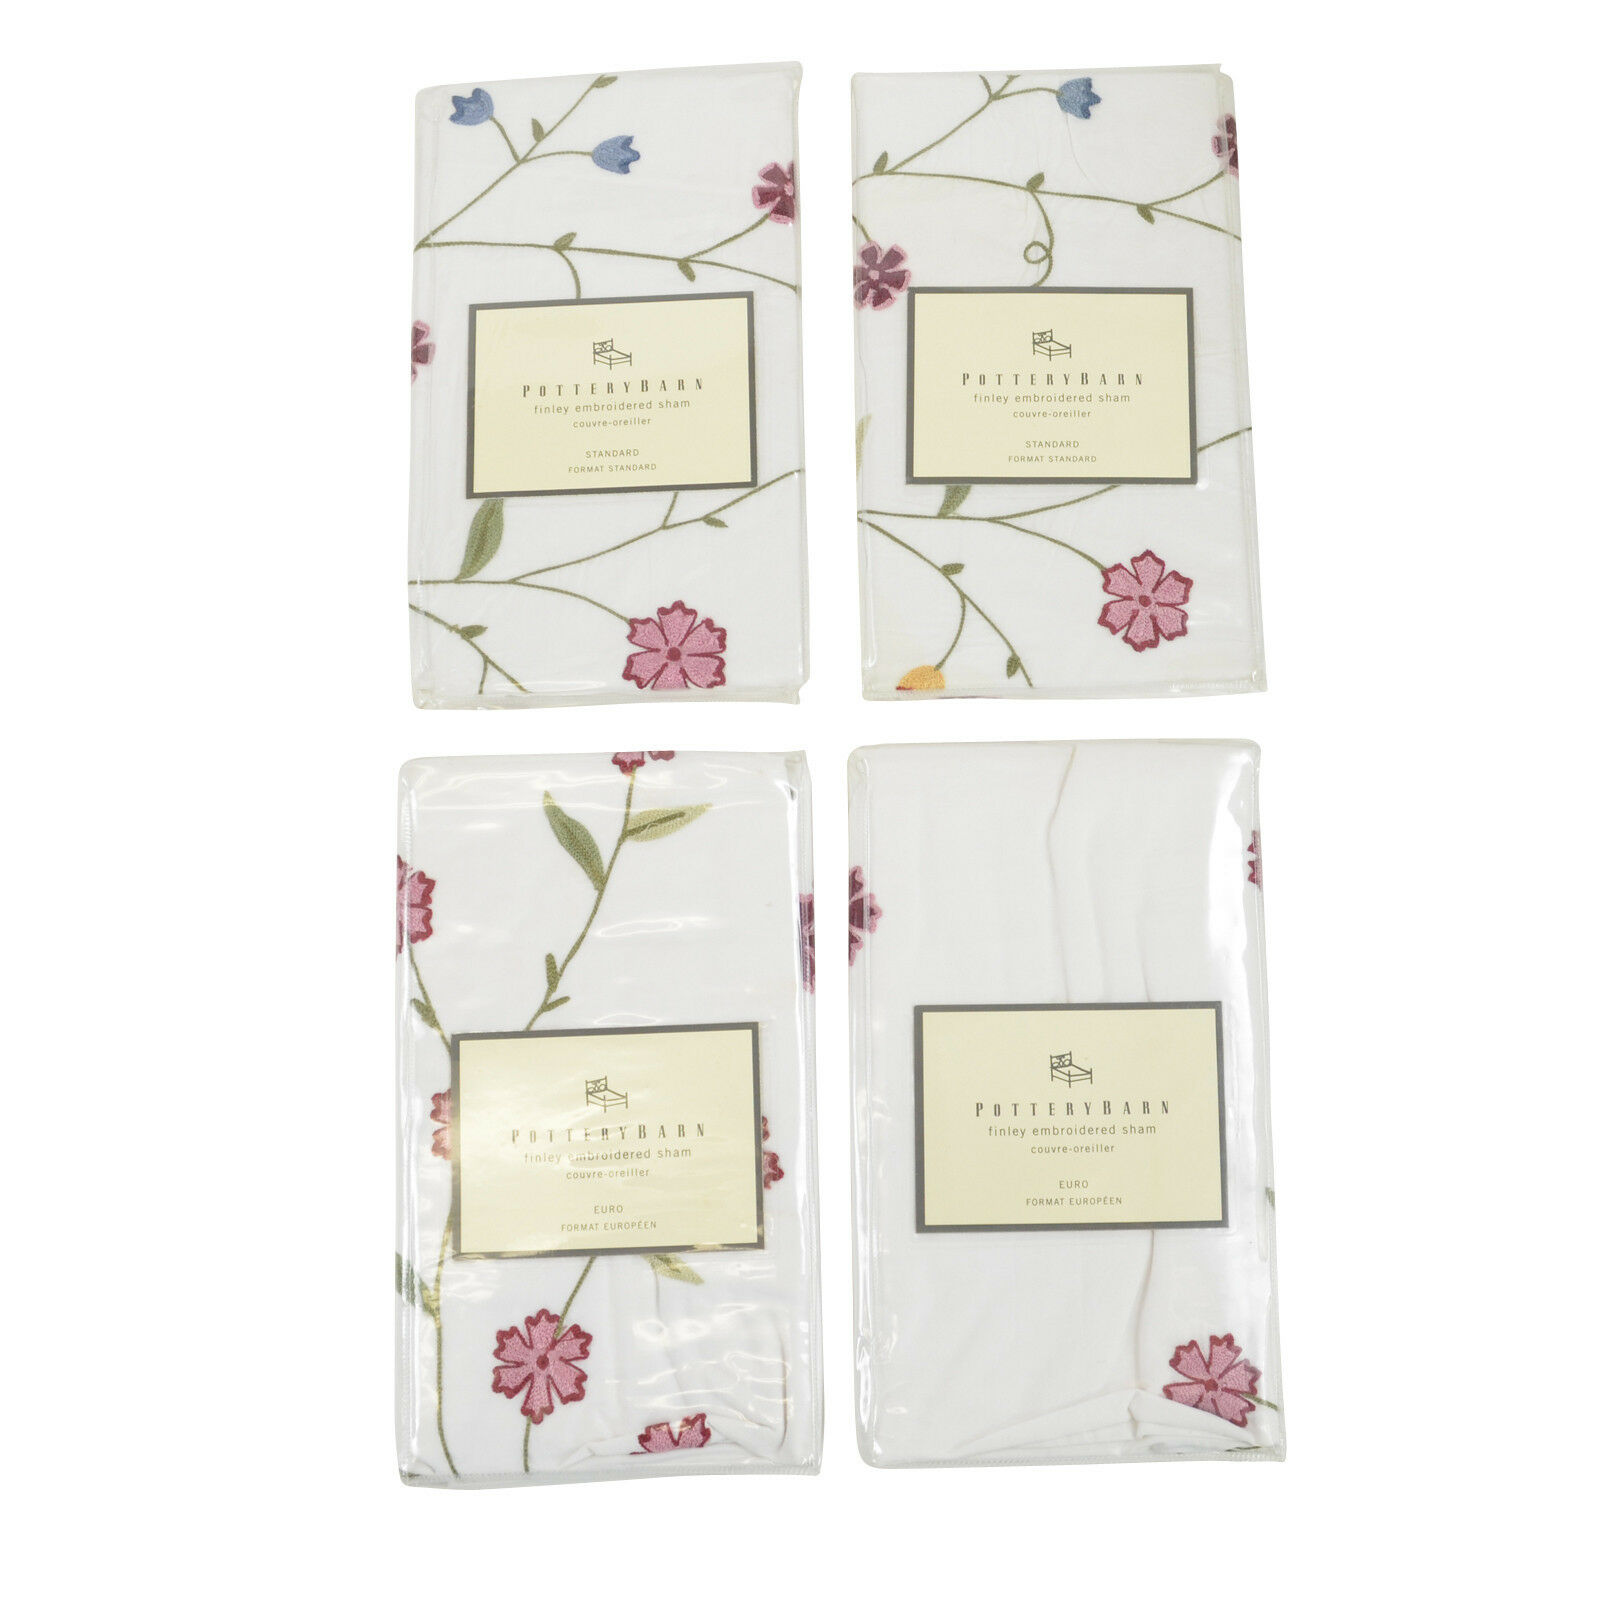 NIP Pottery Barn Finley Floral Embroiderosso Standard Euro Sham S 2